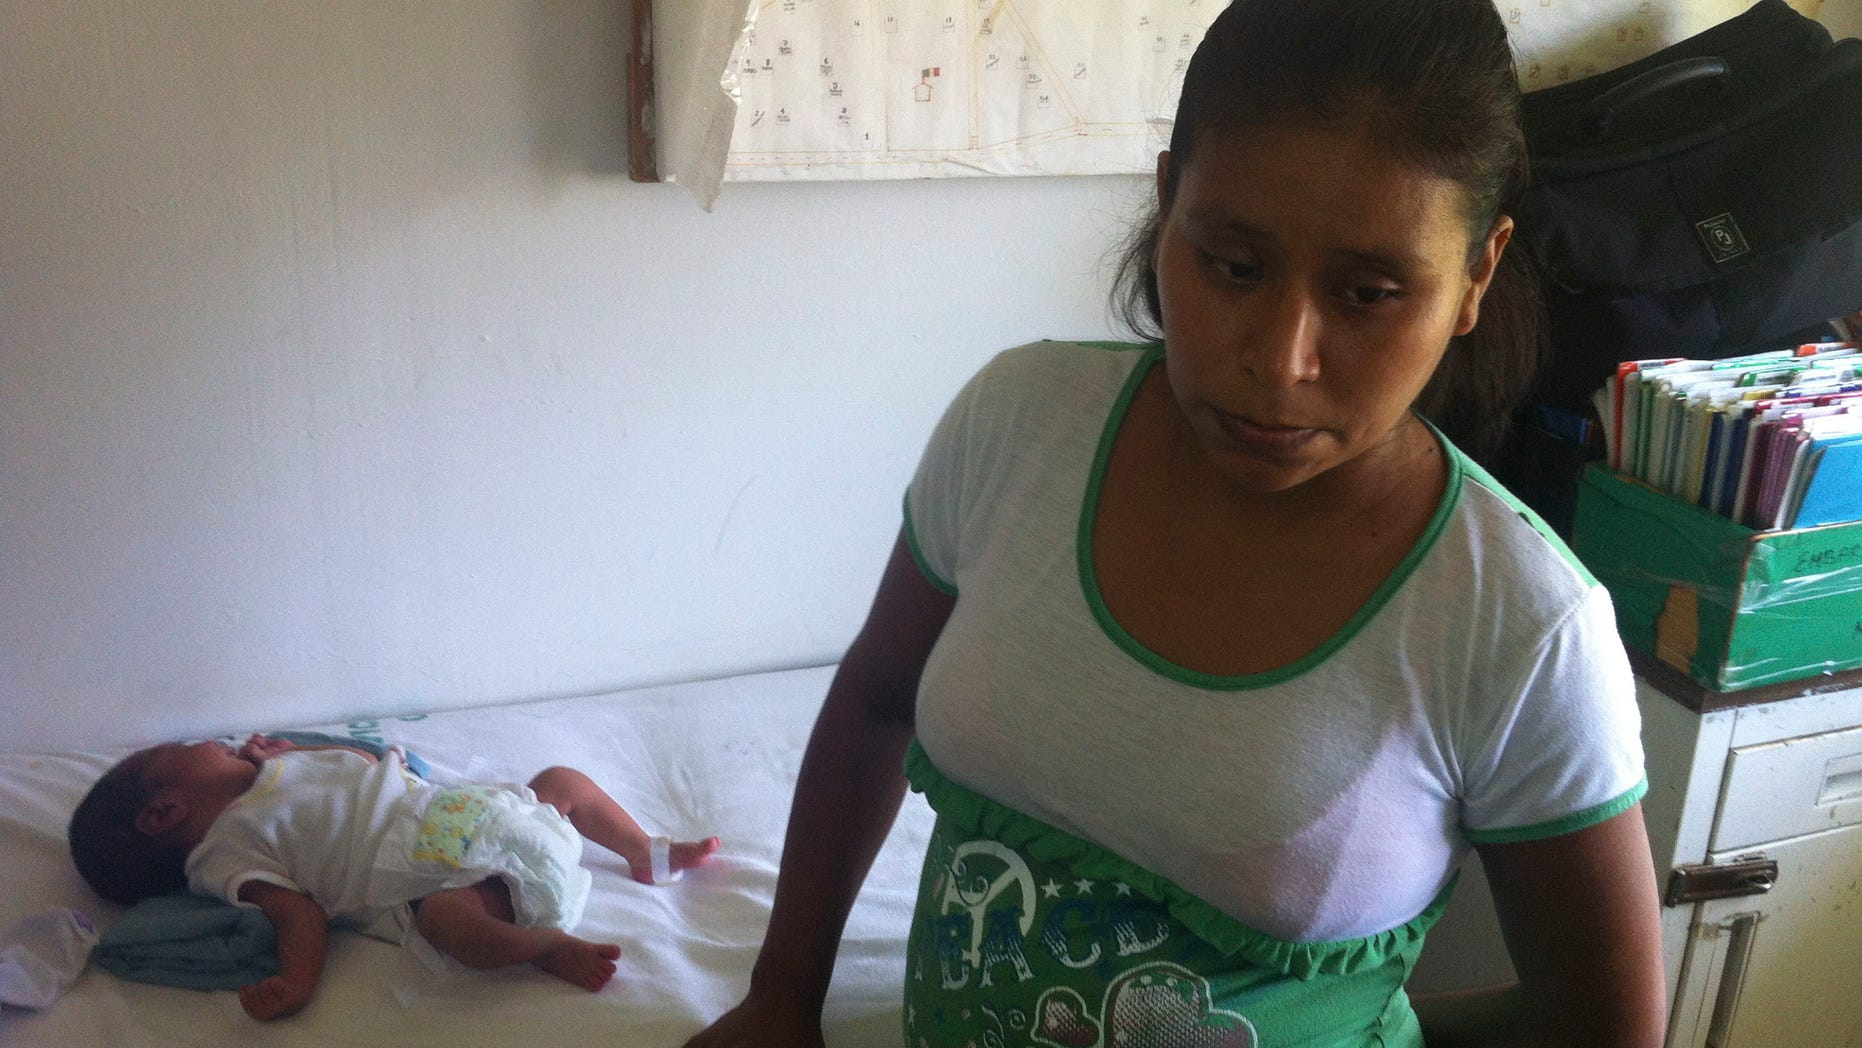 In this photo, 29-year-old Irma Lopez stands next to her newborn son Salvador at a clinic in the town of Jalapa de Diaz, Mexico. Mexico officials have suspended a health center director after Lopez, an indigenous woman, was denied entry to his clinic and was forced to give birth on the lawn.